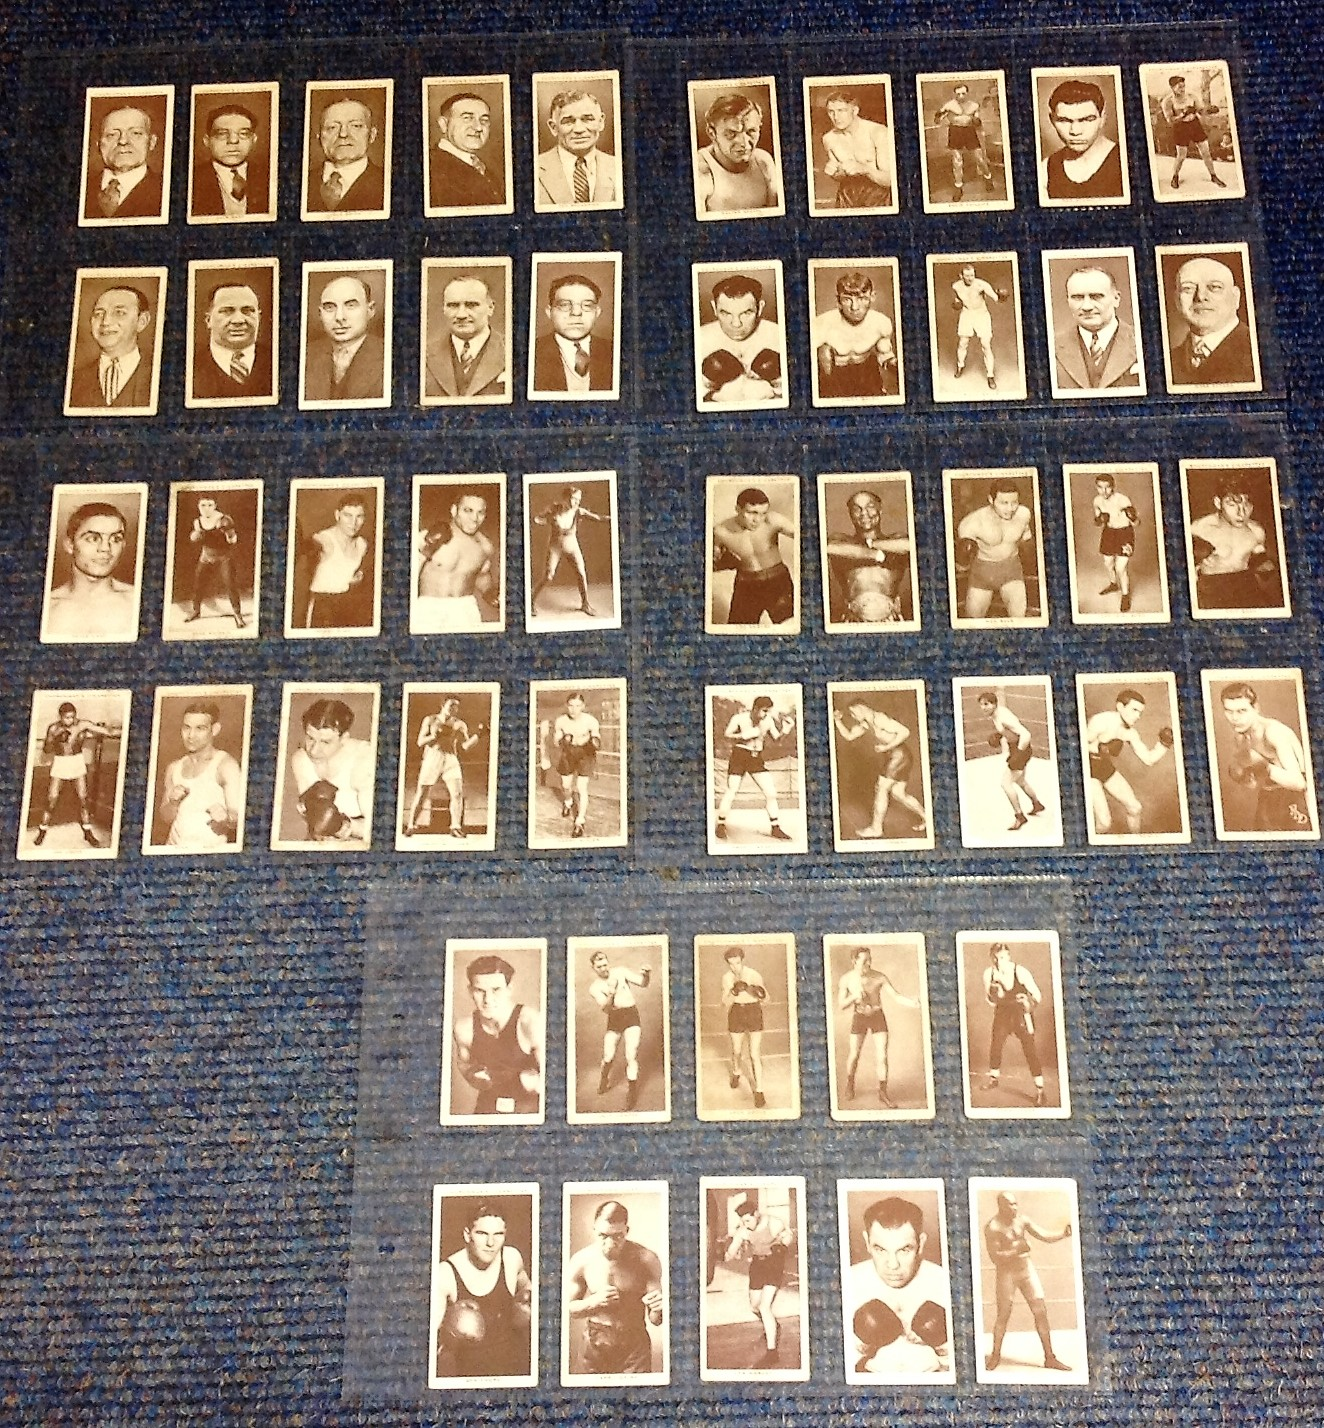 Lot 1 - Churchman Boxing Personalities Cigarette cards, complete set of 50 vintage cards issued in 1938 with